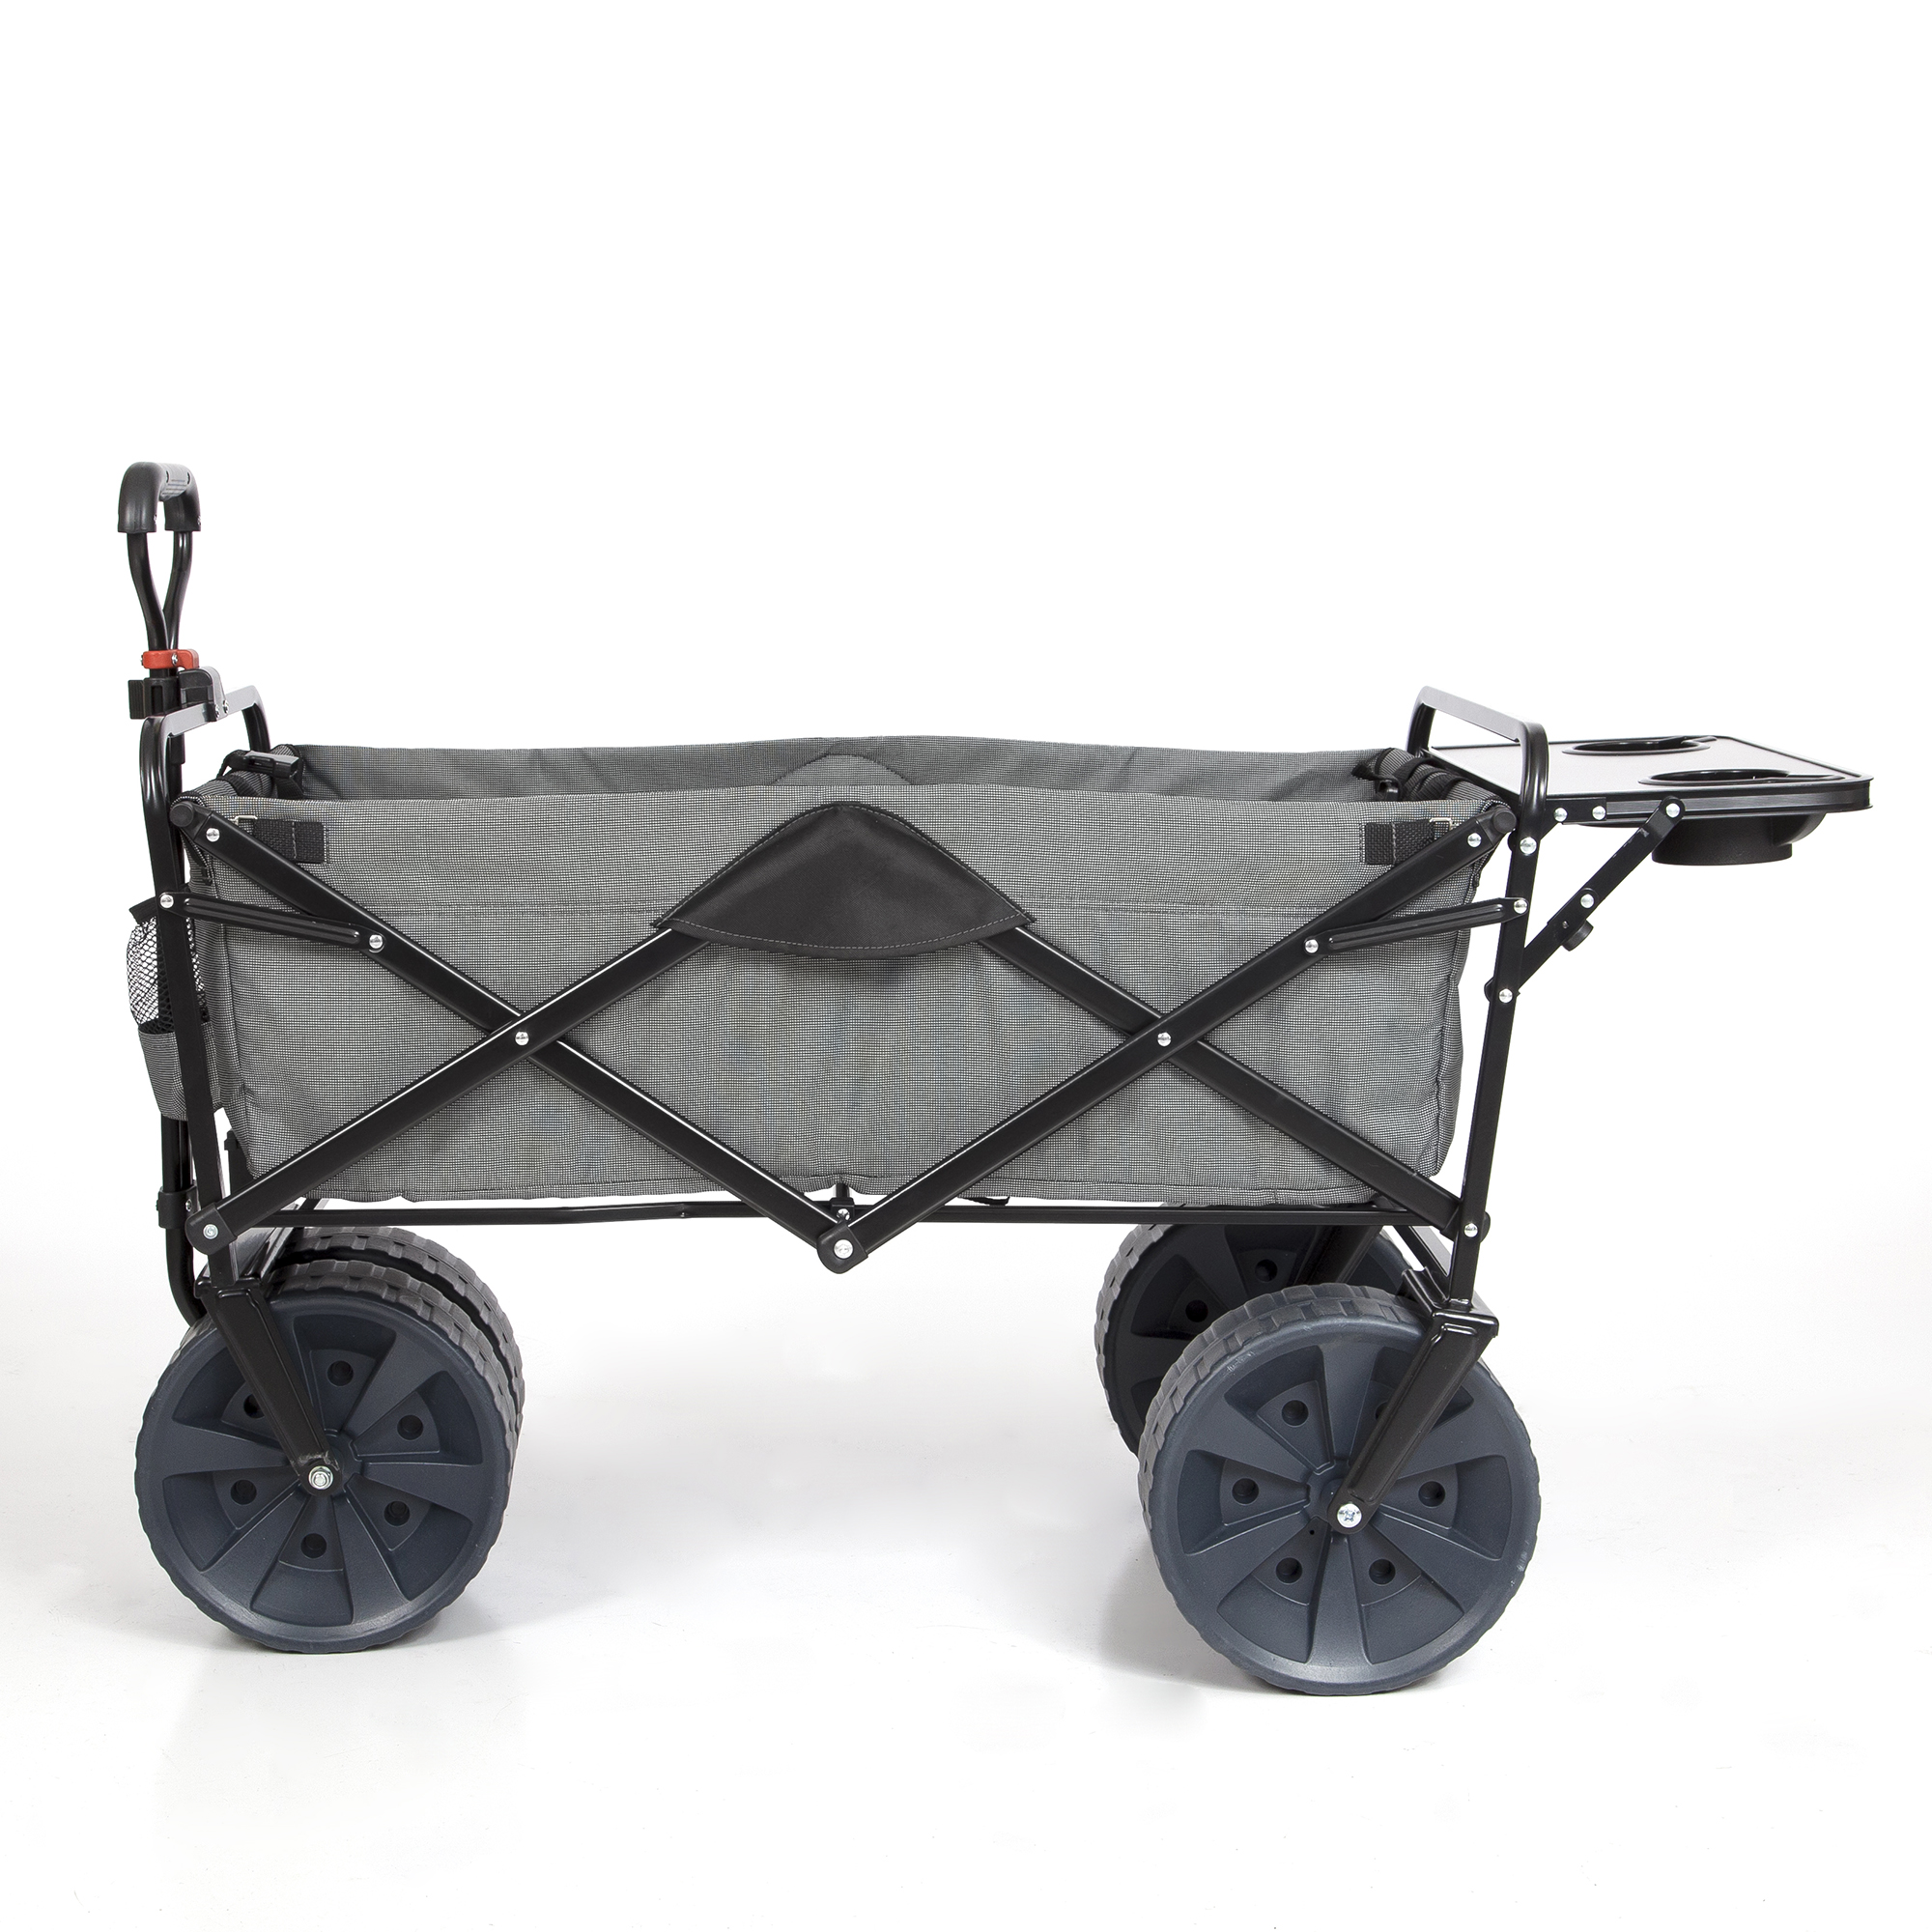 Details about Mac Sports Collapsible Heavy Duty All Terrain Utility Wagon  w/ Table, Gray